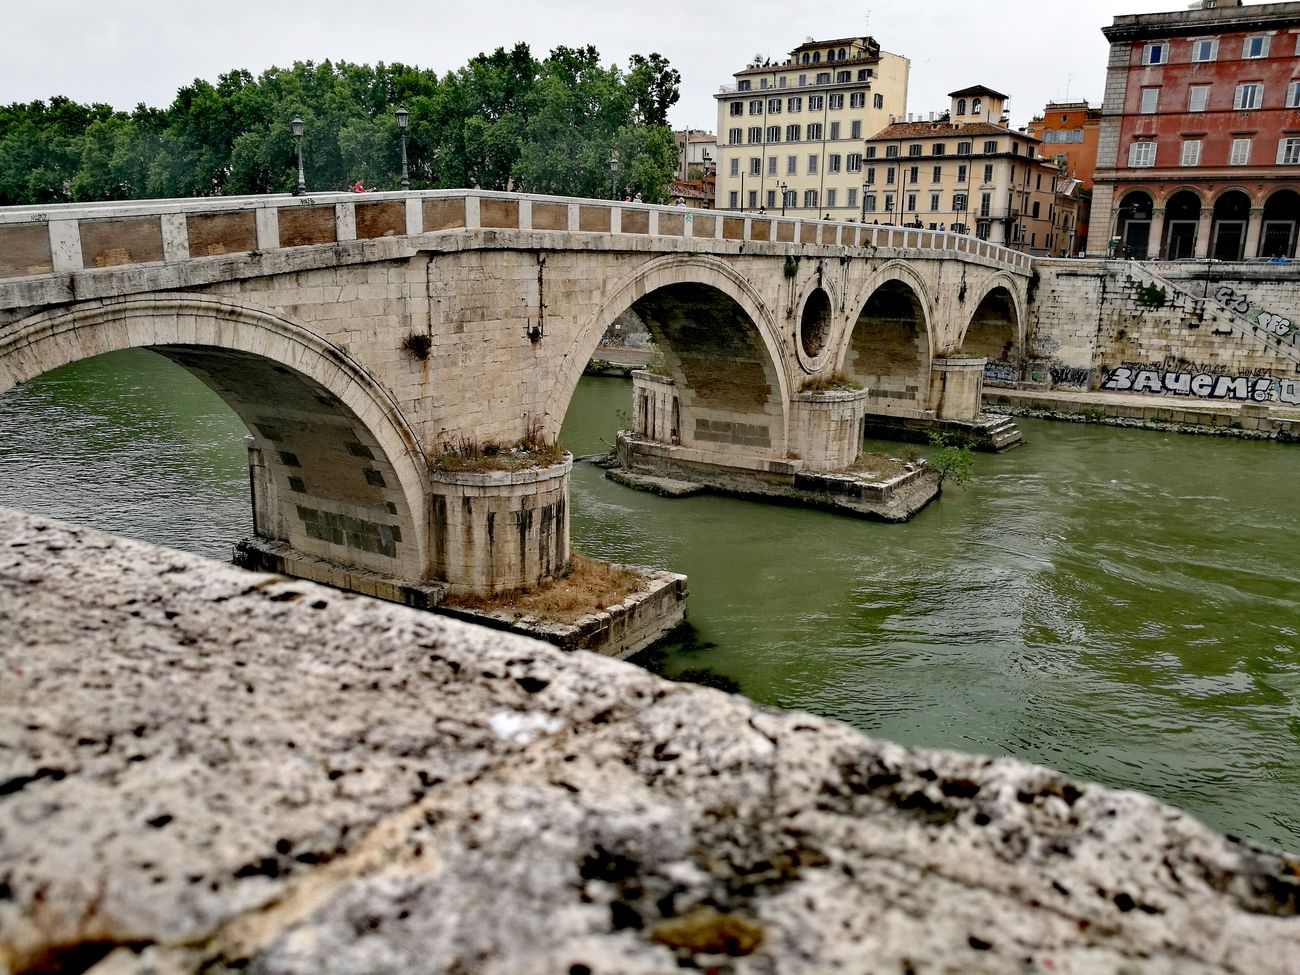 Bridge - Man Made Structure Architecture Built Structure Arch Water River History Outdoors Day No People City Sky Nature Walking Passeggiando Roma Rome Architecture_collection Architecturecollection Turisti Tevere River Tevereterno Lungotevere Beautiful Places